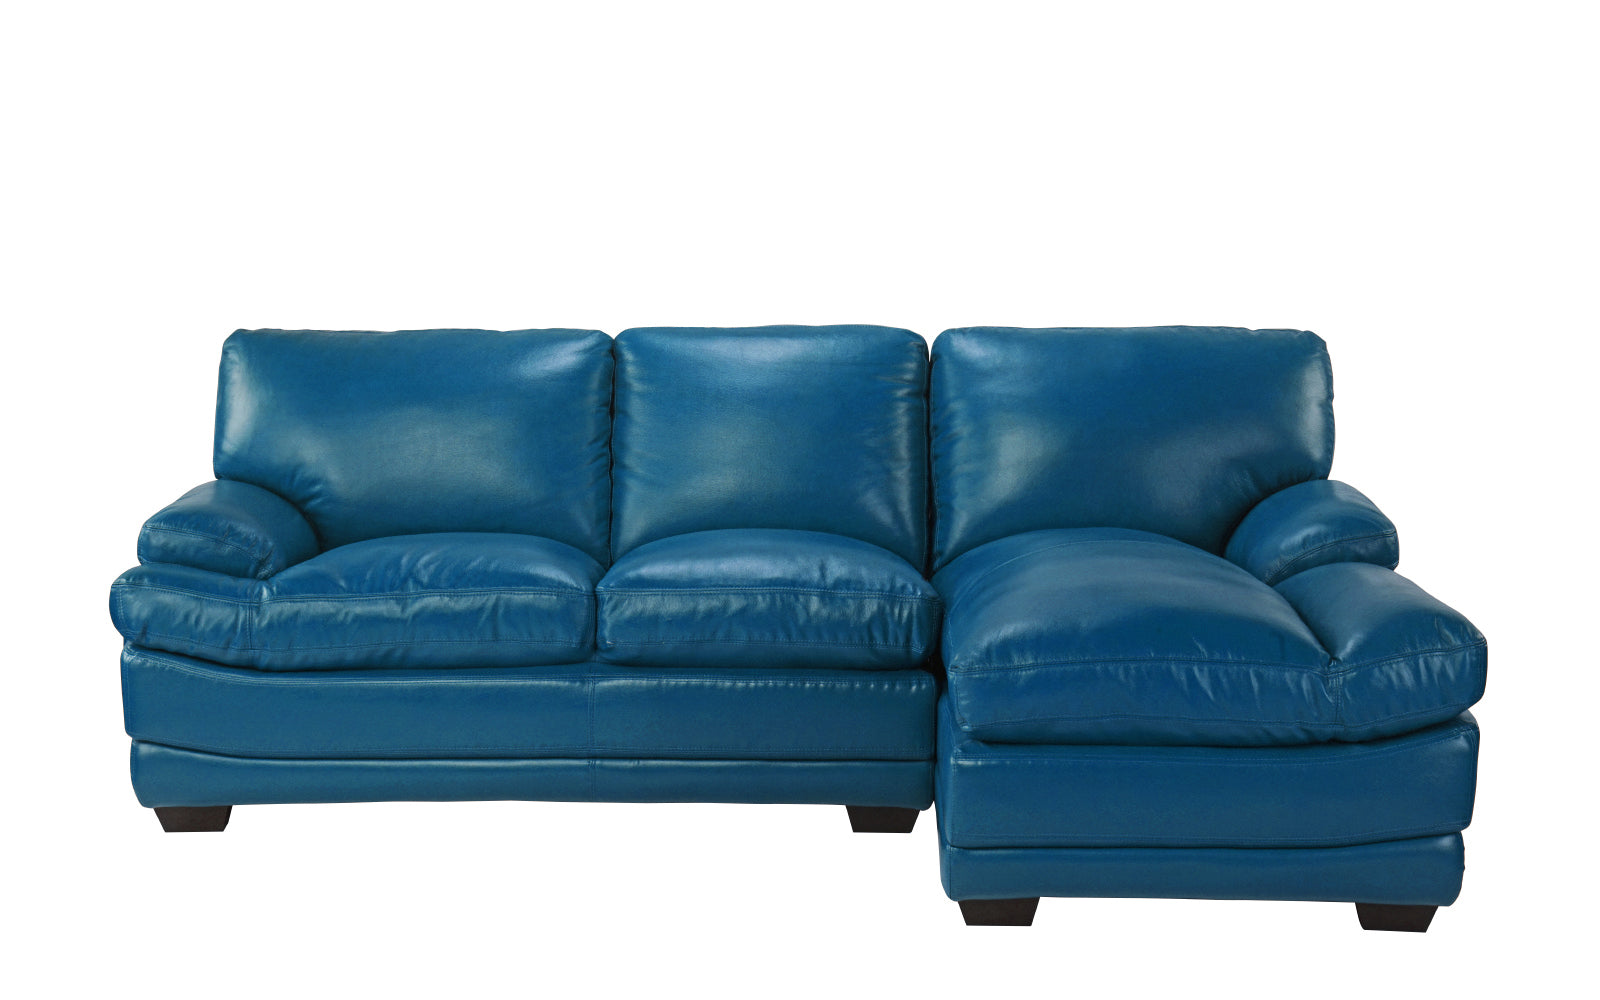 Leather Sectional Right Chaise Image